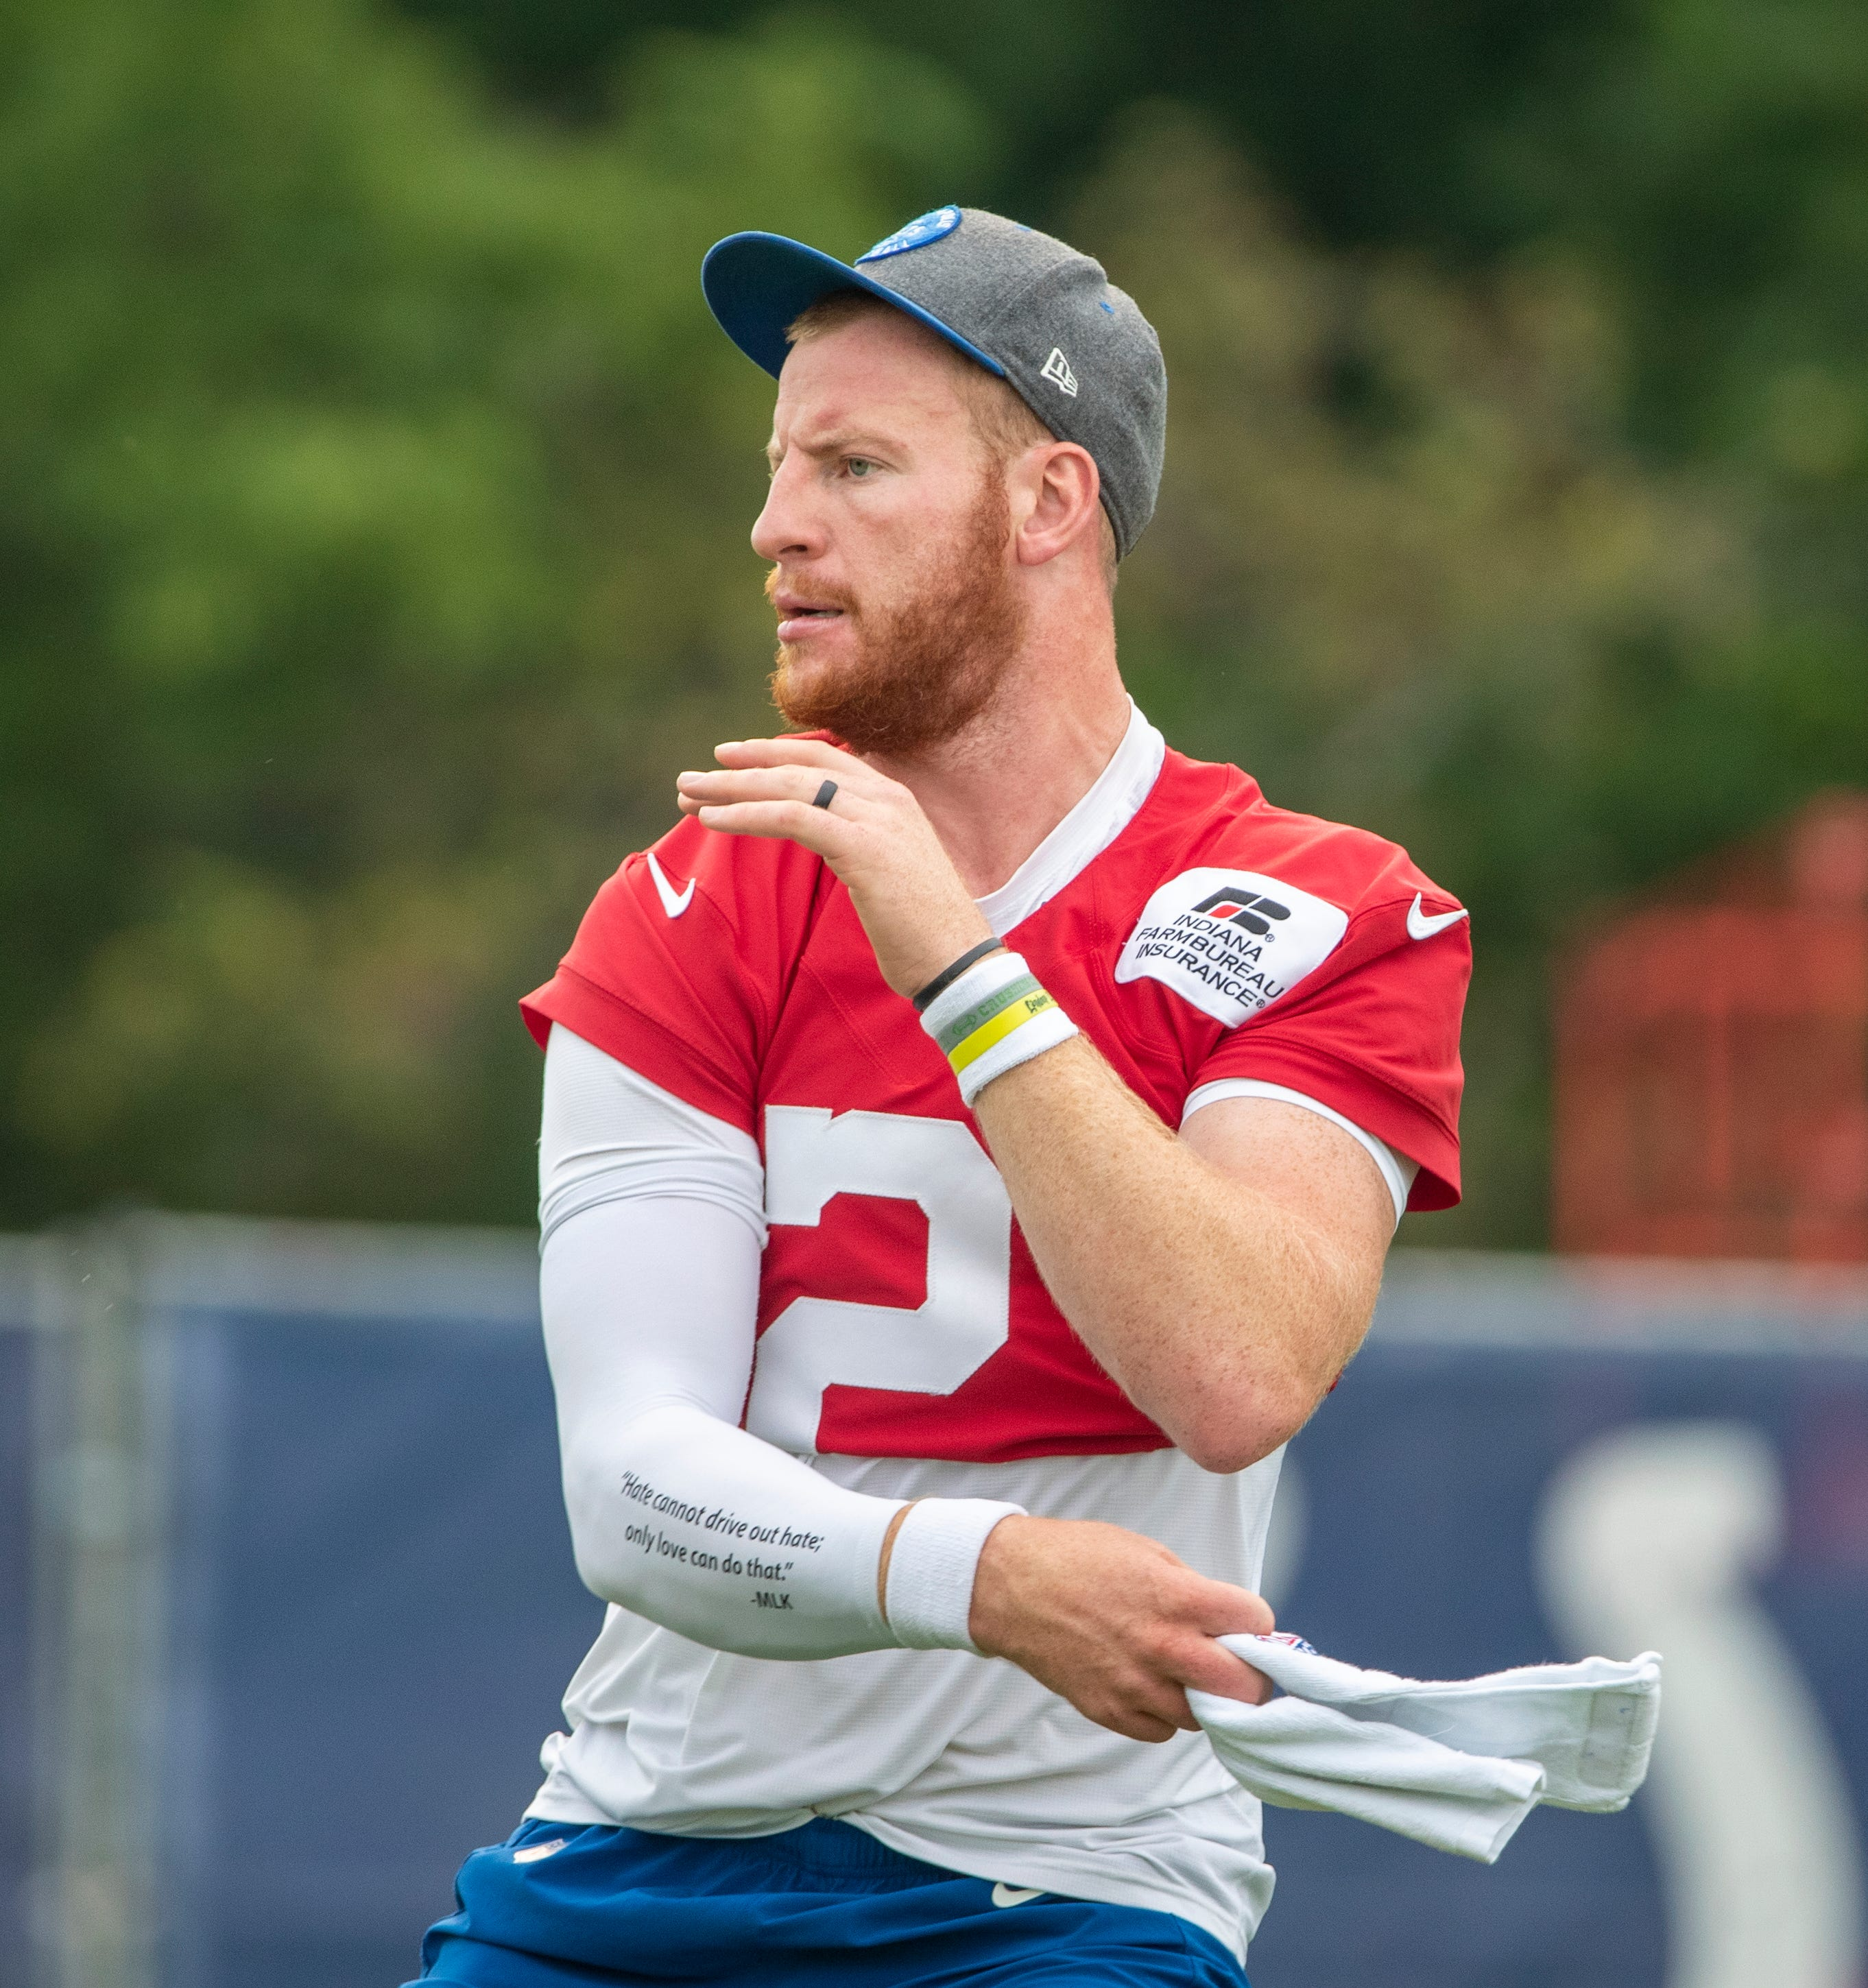 Colts QB Carson Wentz misses practice with foot injury